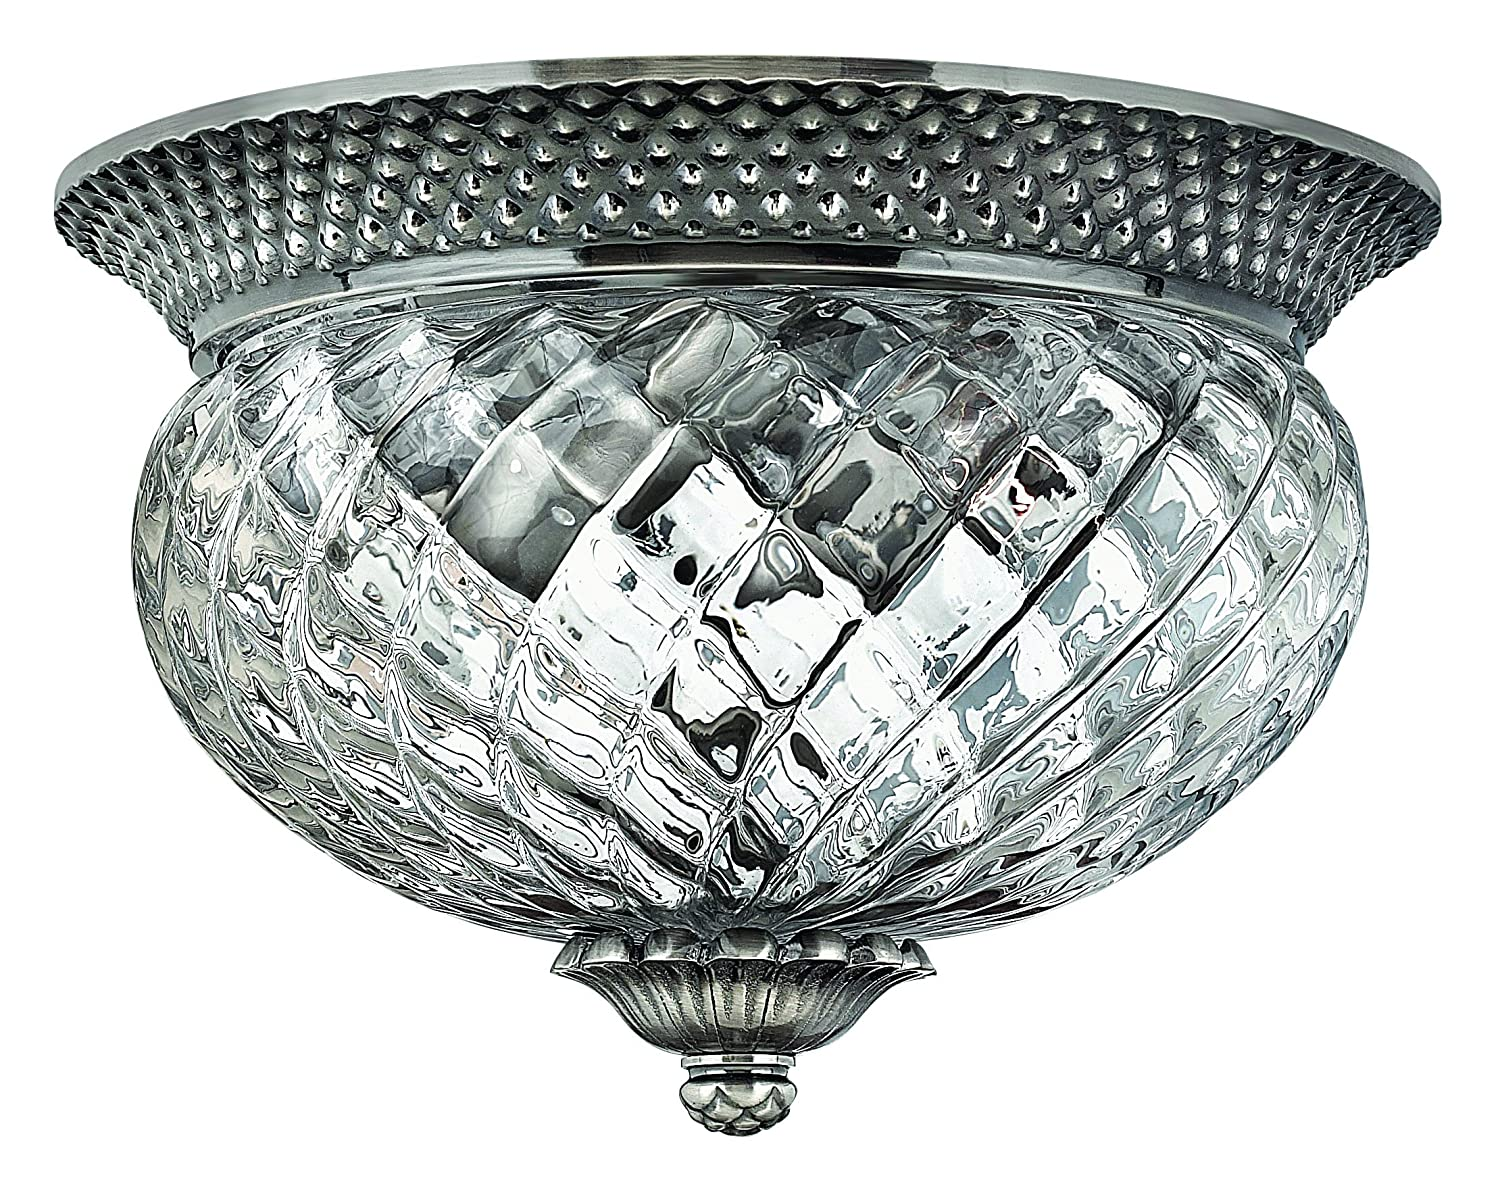 Hinkley 4102PL Traditional Two Light Flush Mount from Plantation collection in Pwt Nckl B/S Slvr.finish - Flush Mount Ceiling Light Fixtures - Amazon. ...  sc 1 st  Amazon.com & Hinkley 4102PL Traditional Two Light Flush Mount from Plantation ... azcodes.com